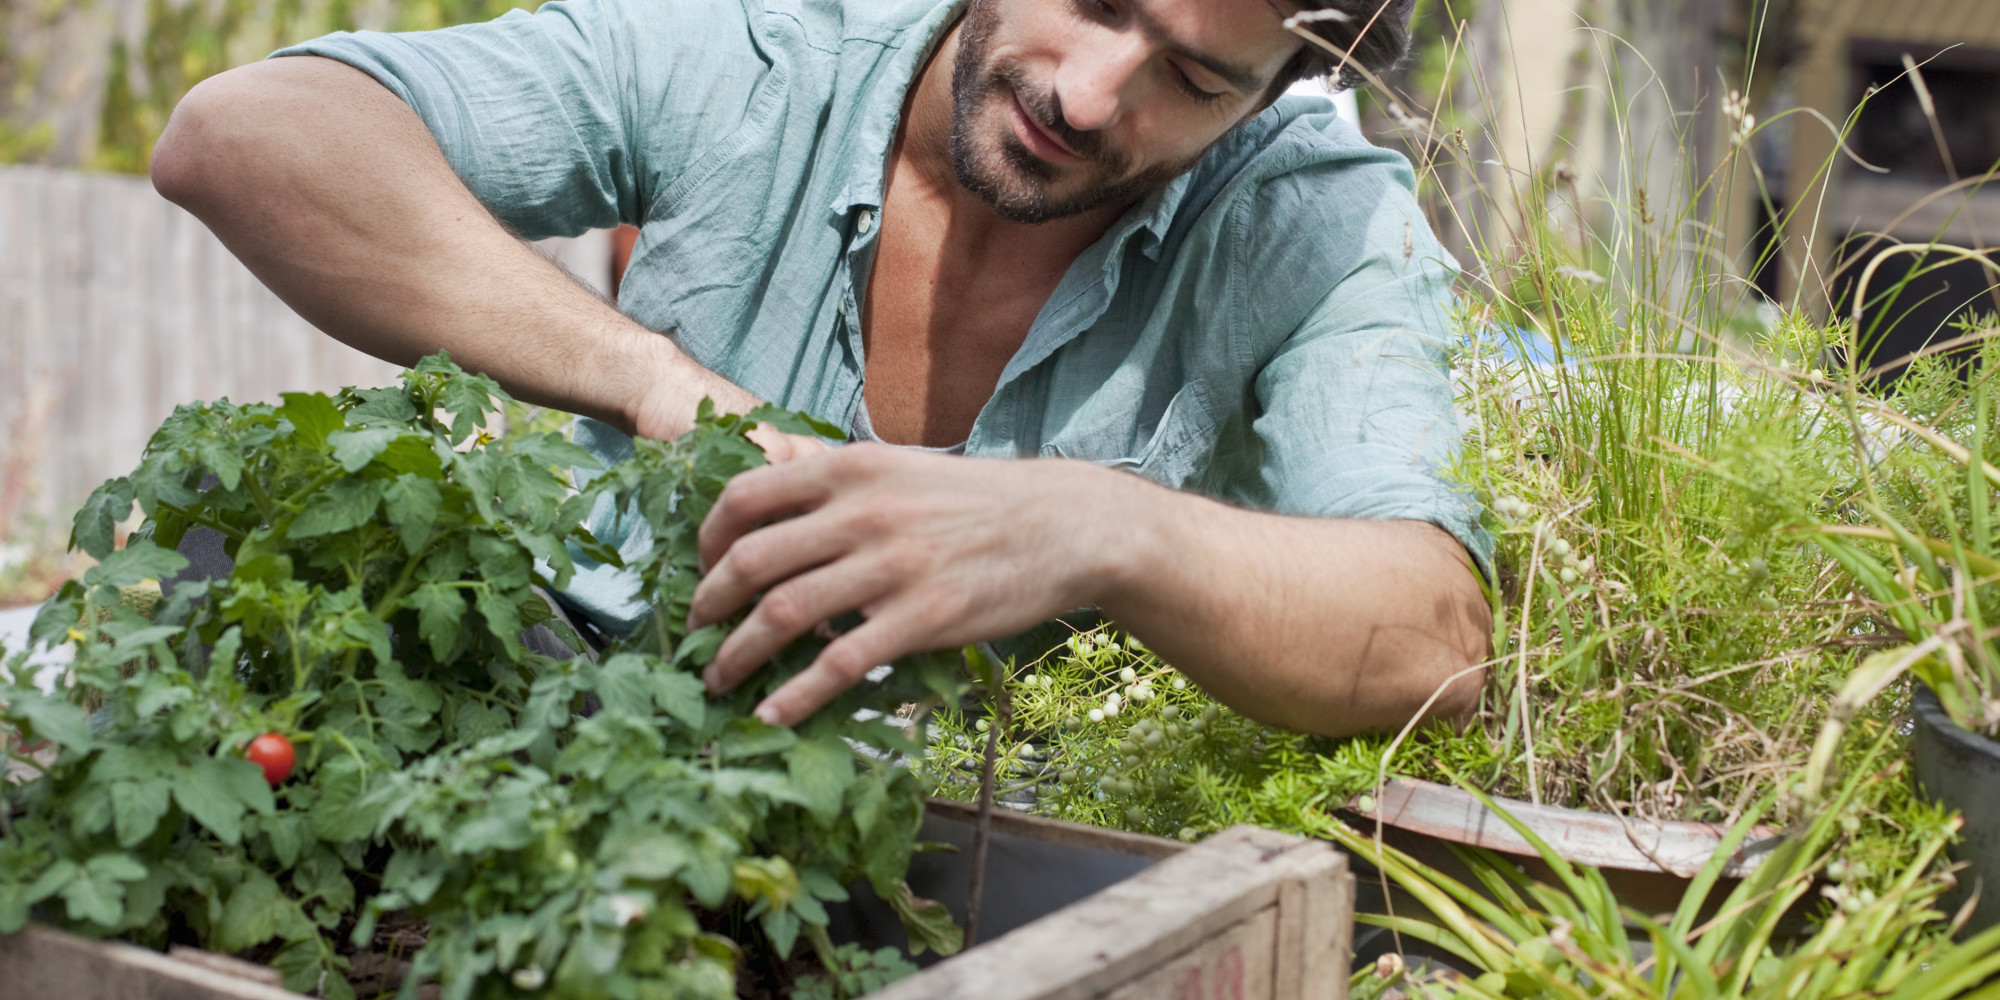 Beginners gardening gardening tips for beginners garden for Gardening advice